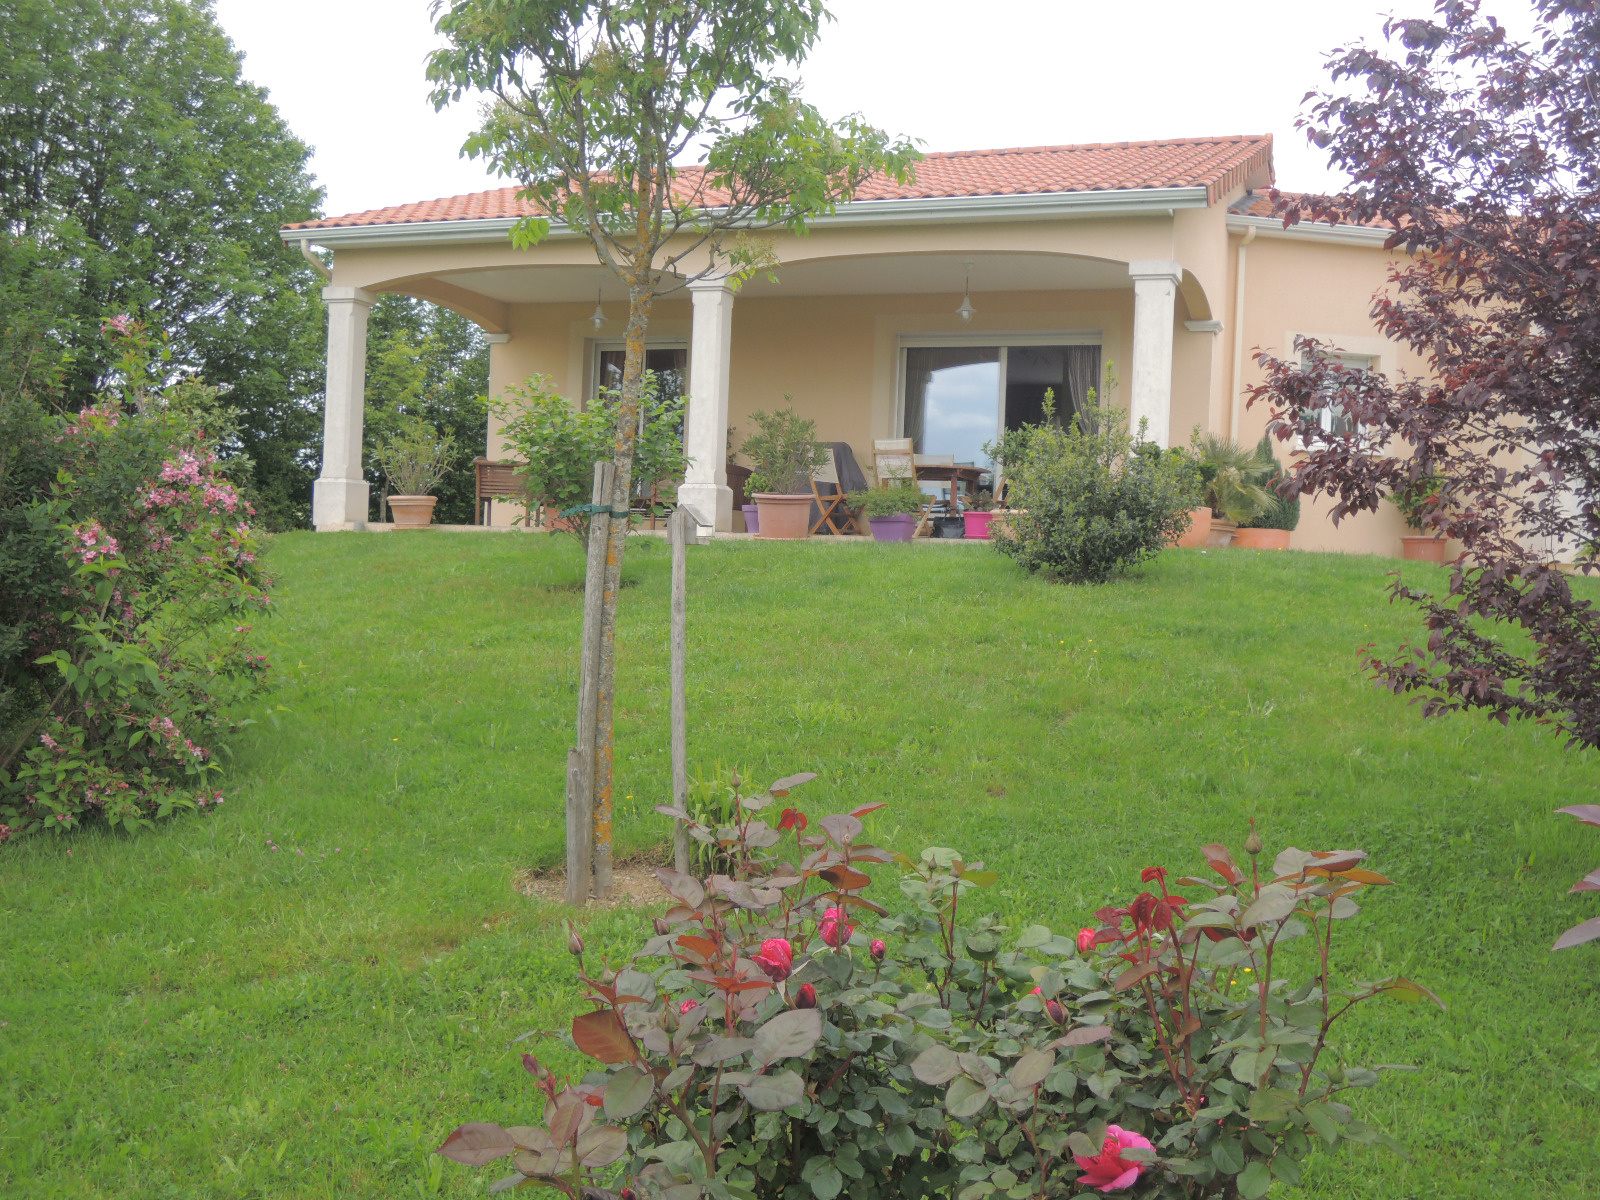 Agence immobiliere montbron anb immobilier for Agence jardin immobilier